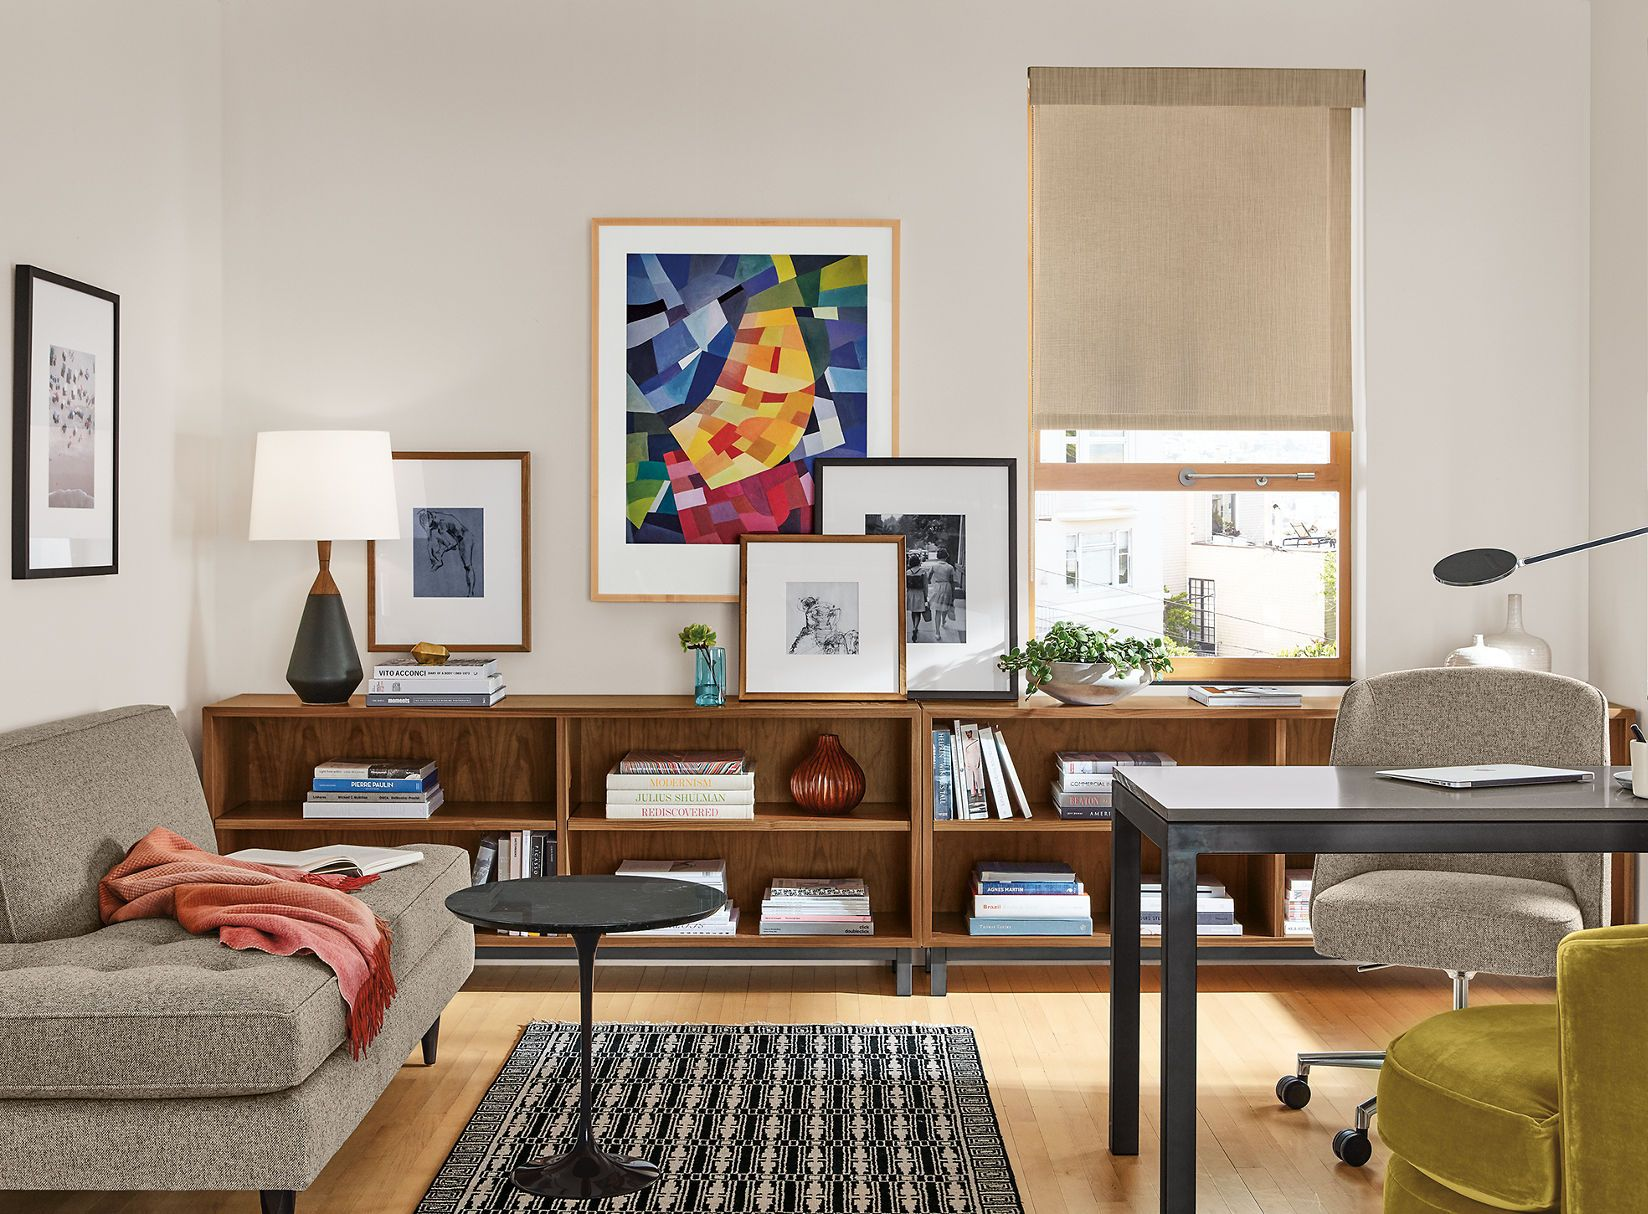 Small space ideas solutions ideas advice room board